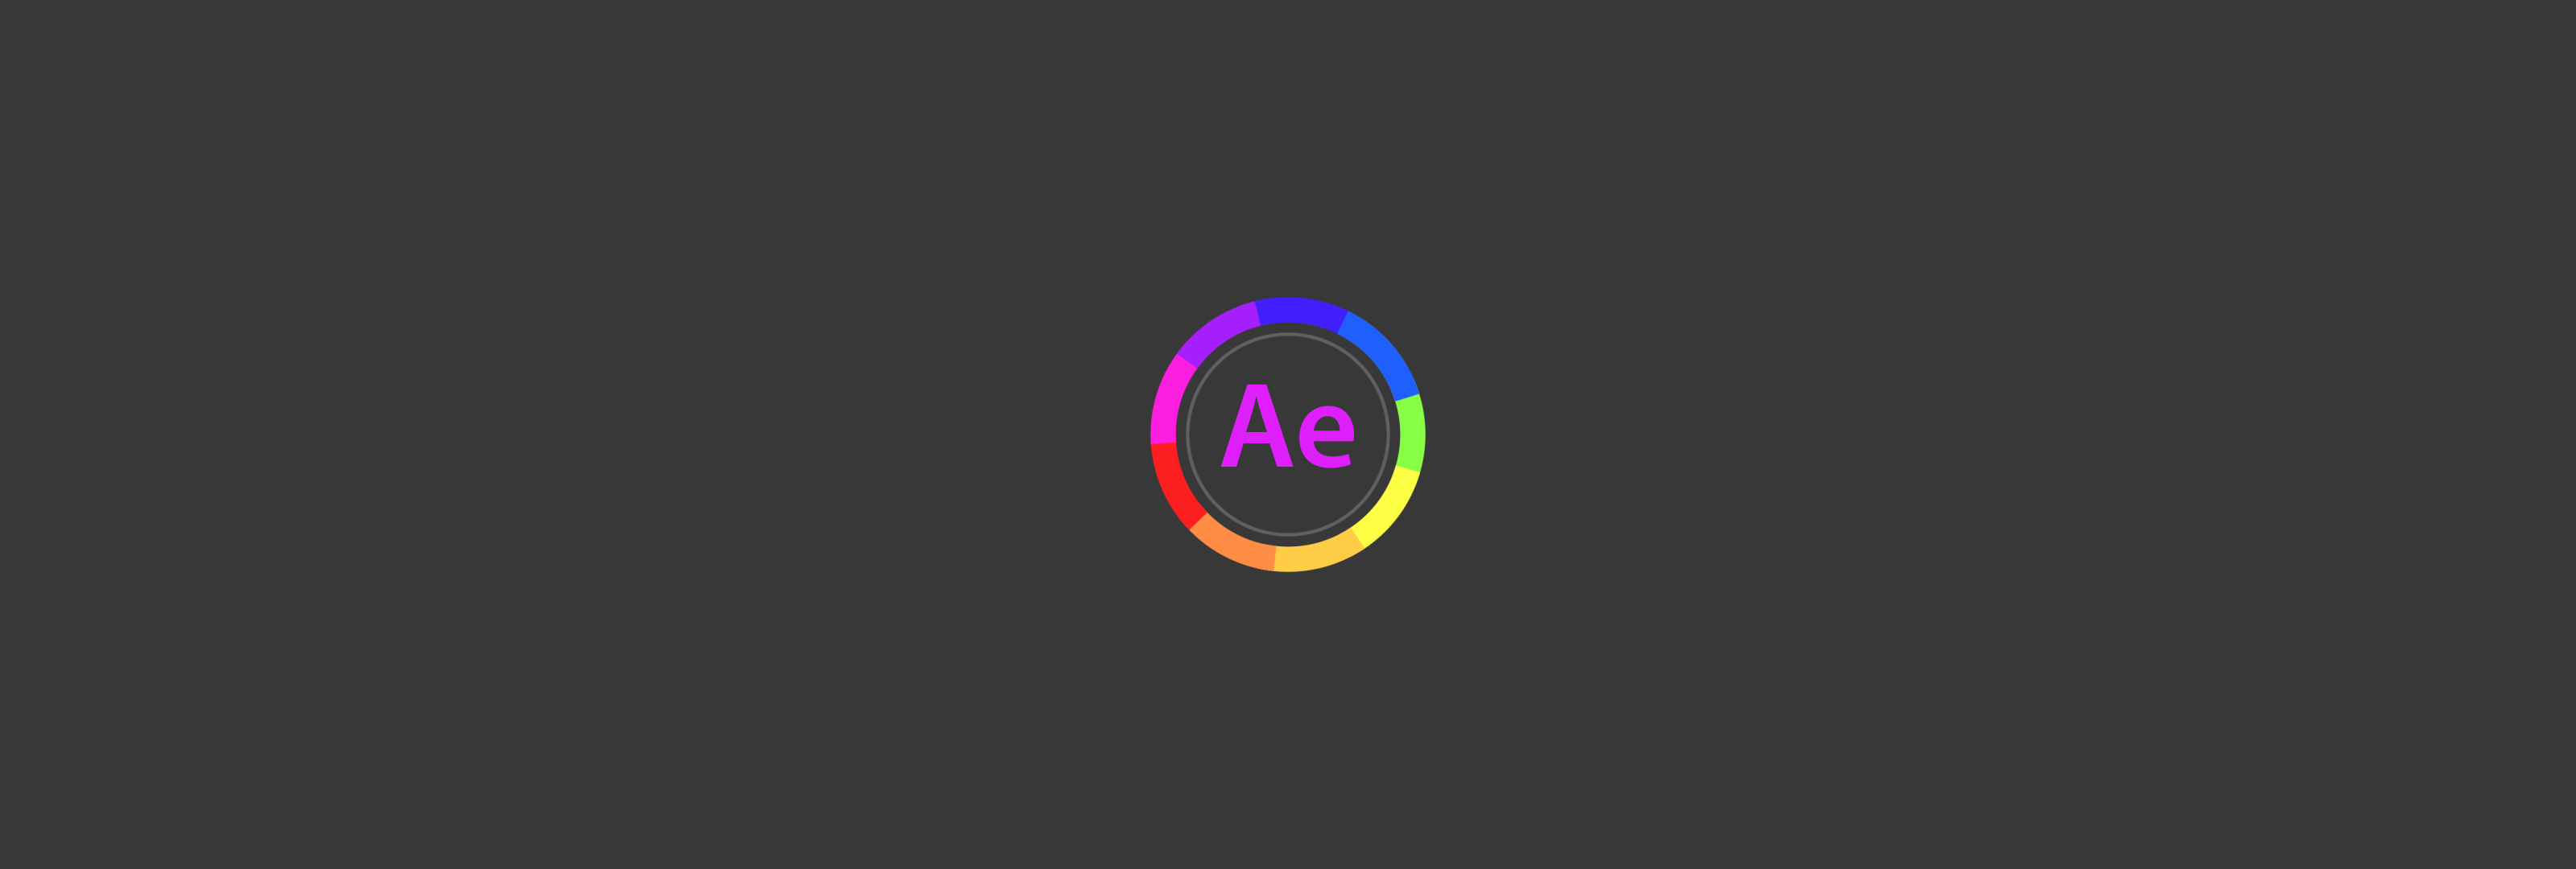 15 Free Color Presets For After Effects | Motion Array